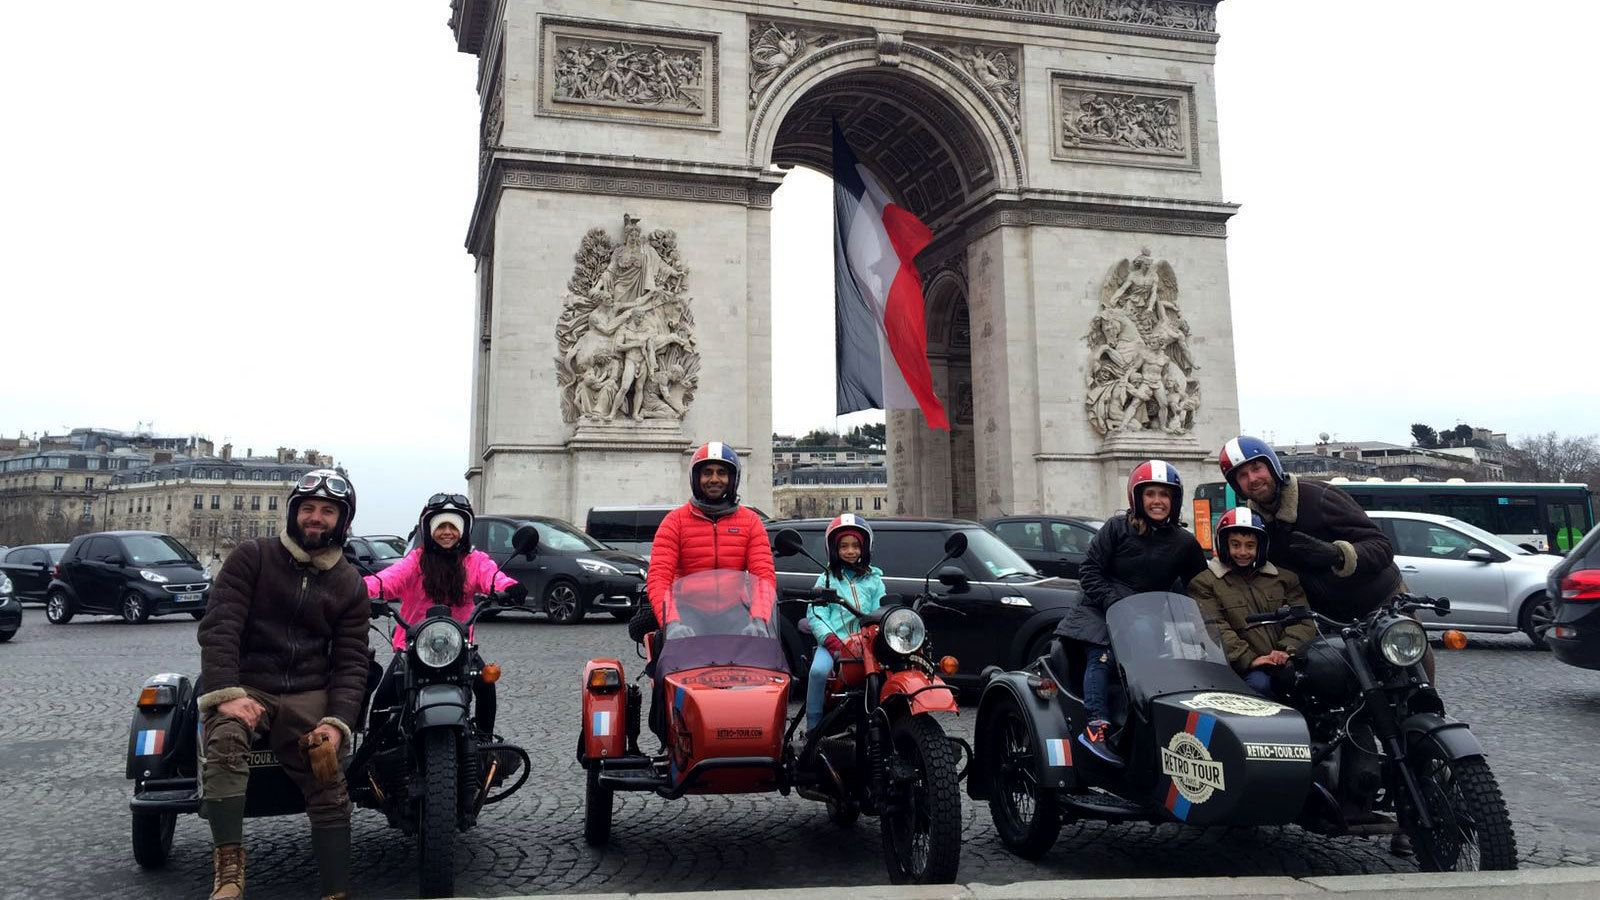 Group on motorcycles with sidecars in front of the Arc de Triomphe in Paris